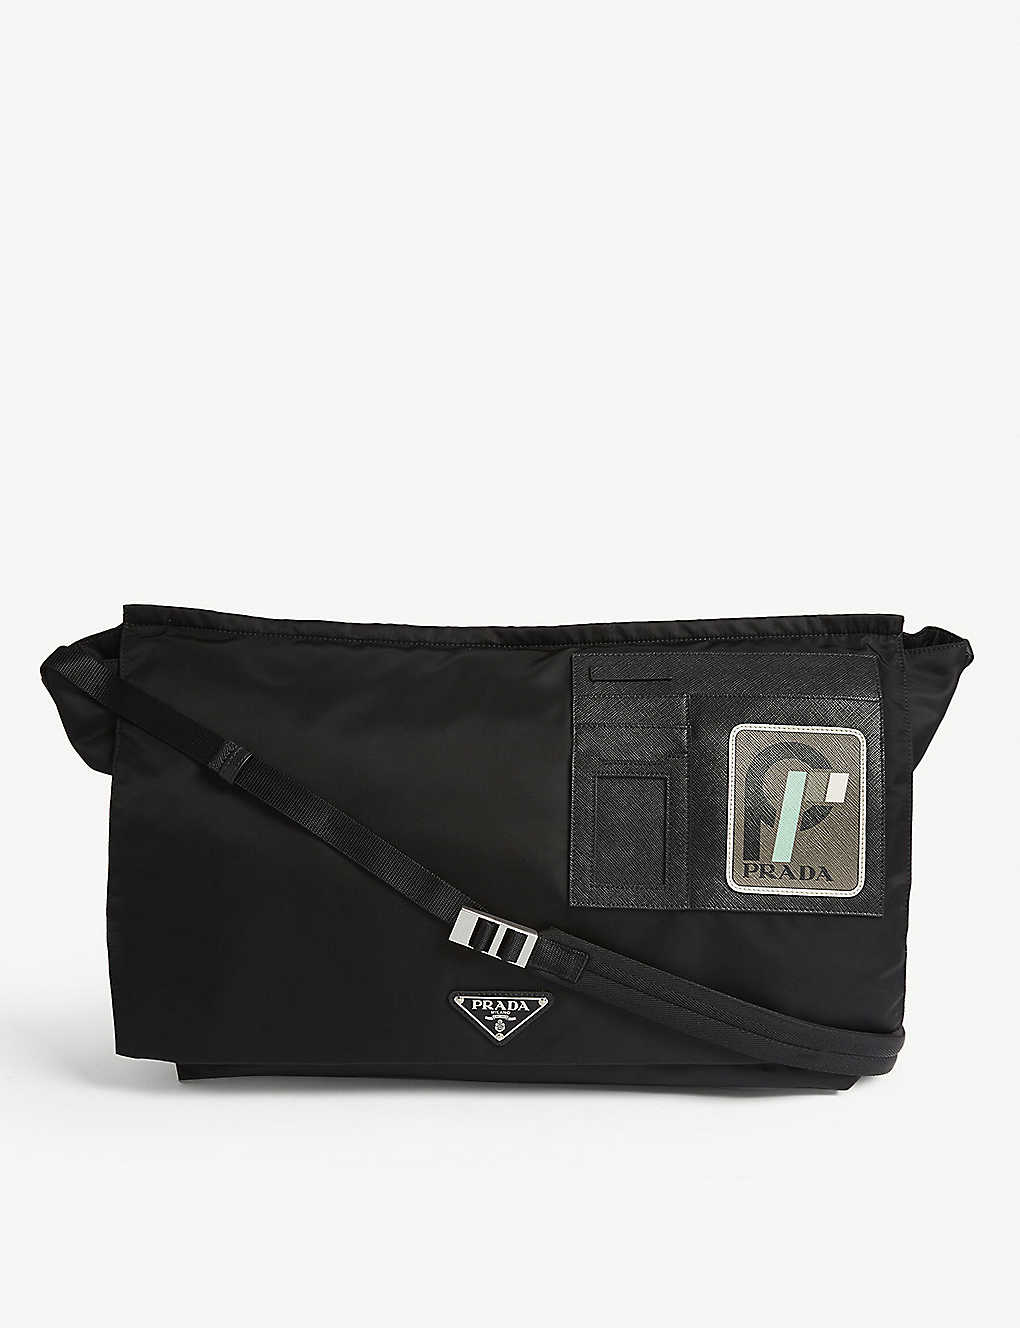 d75f6032507a PRADA Nylon messenger bag. Currently unavailable. This product is  unfortunately ...